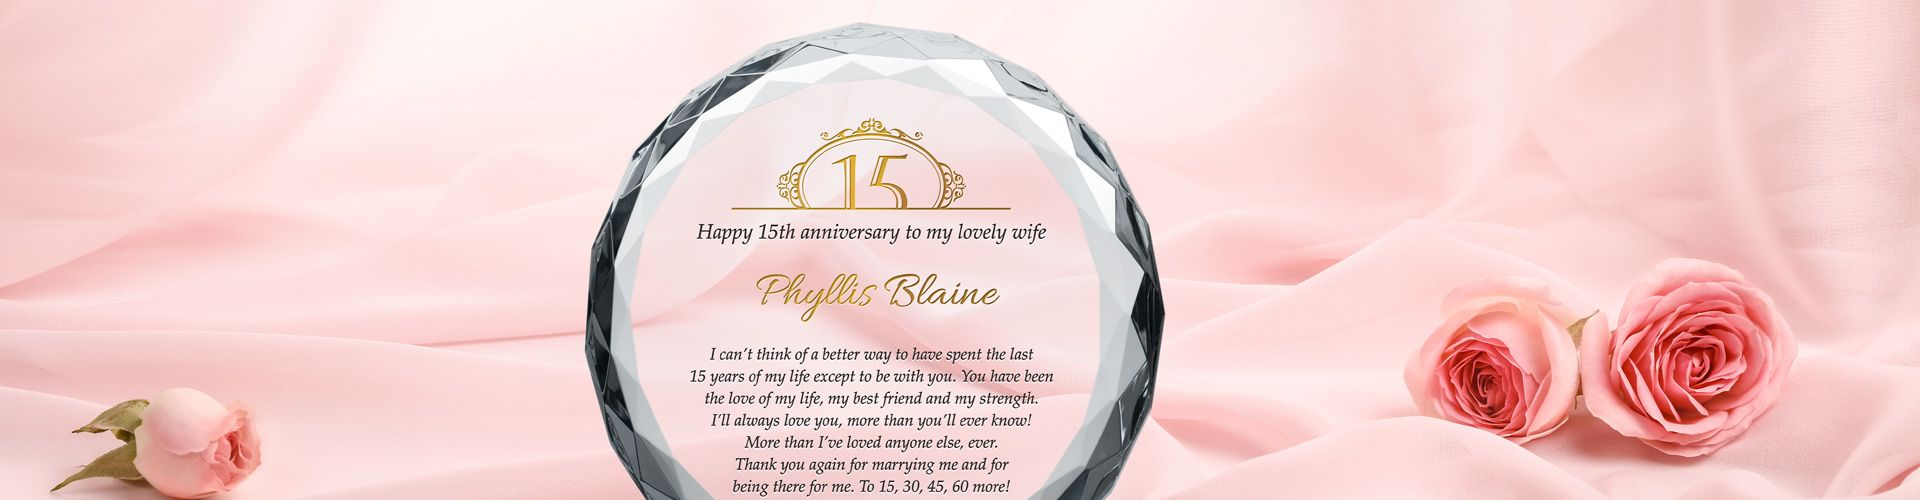 Th anniversary wordings ideas and sample layout diy awards